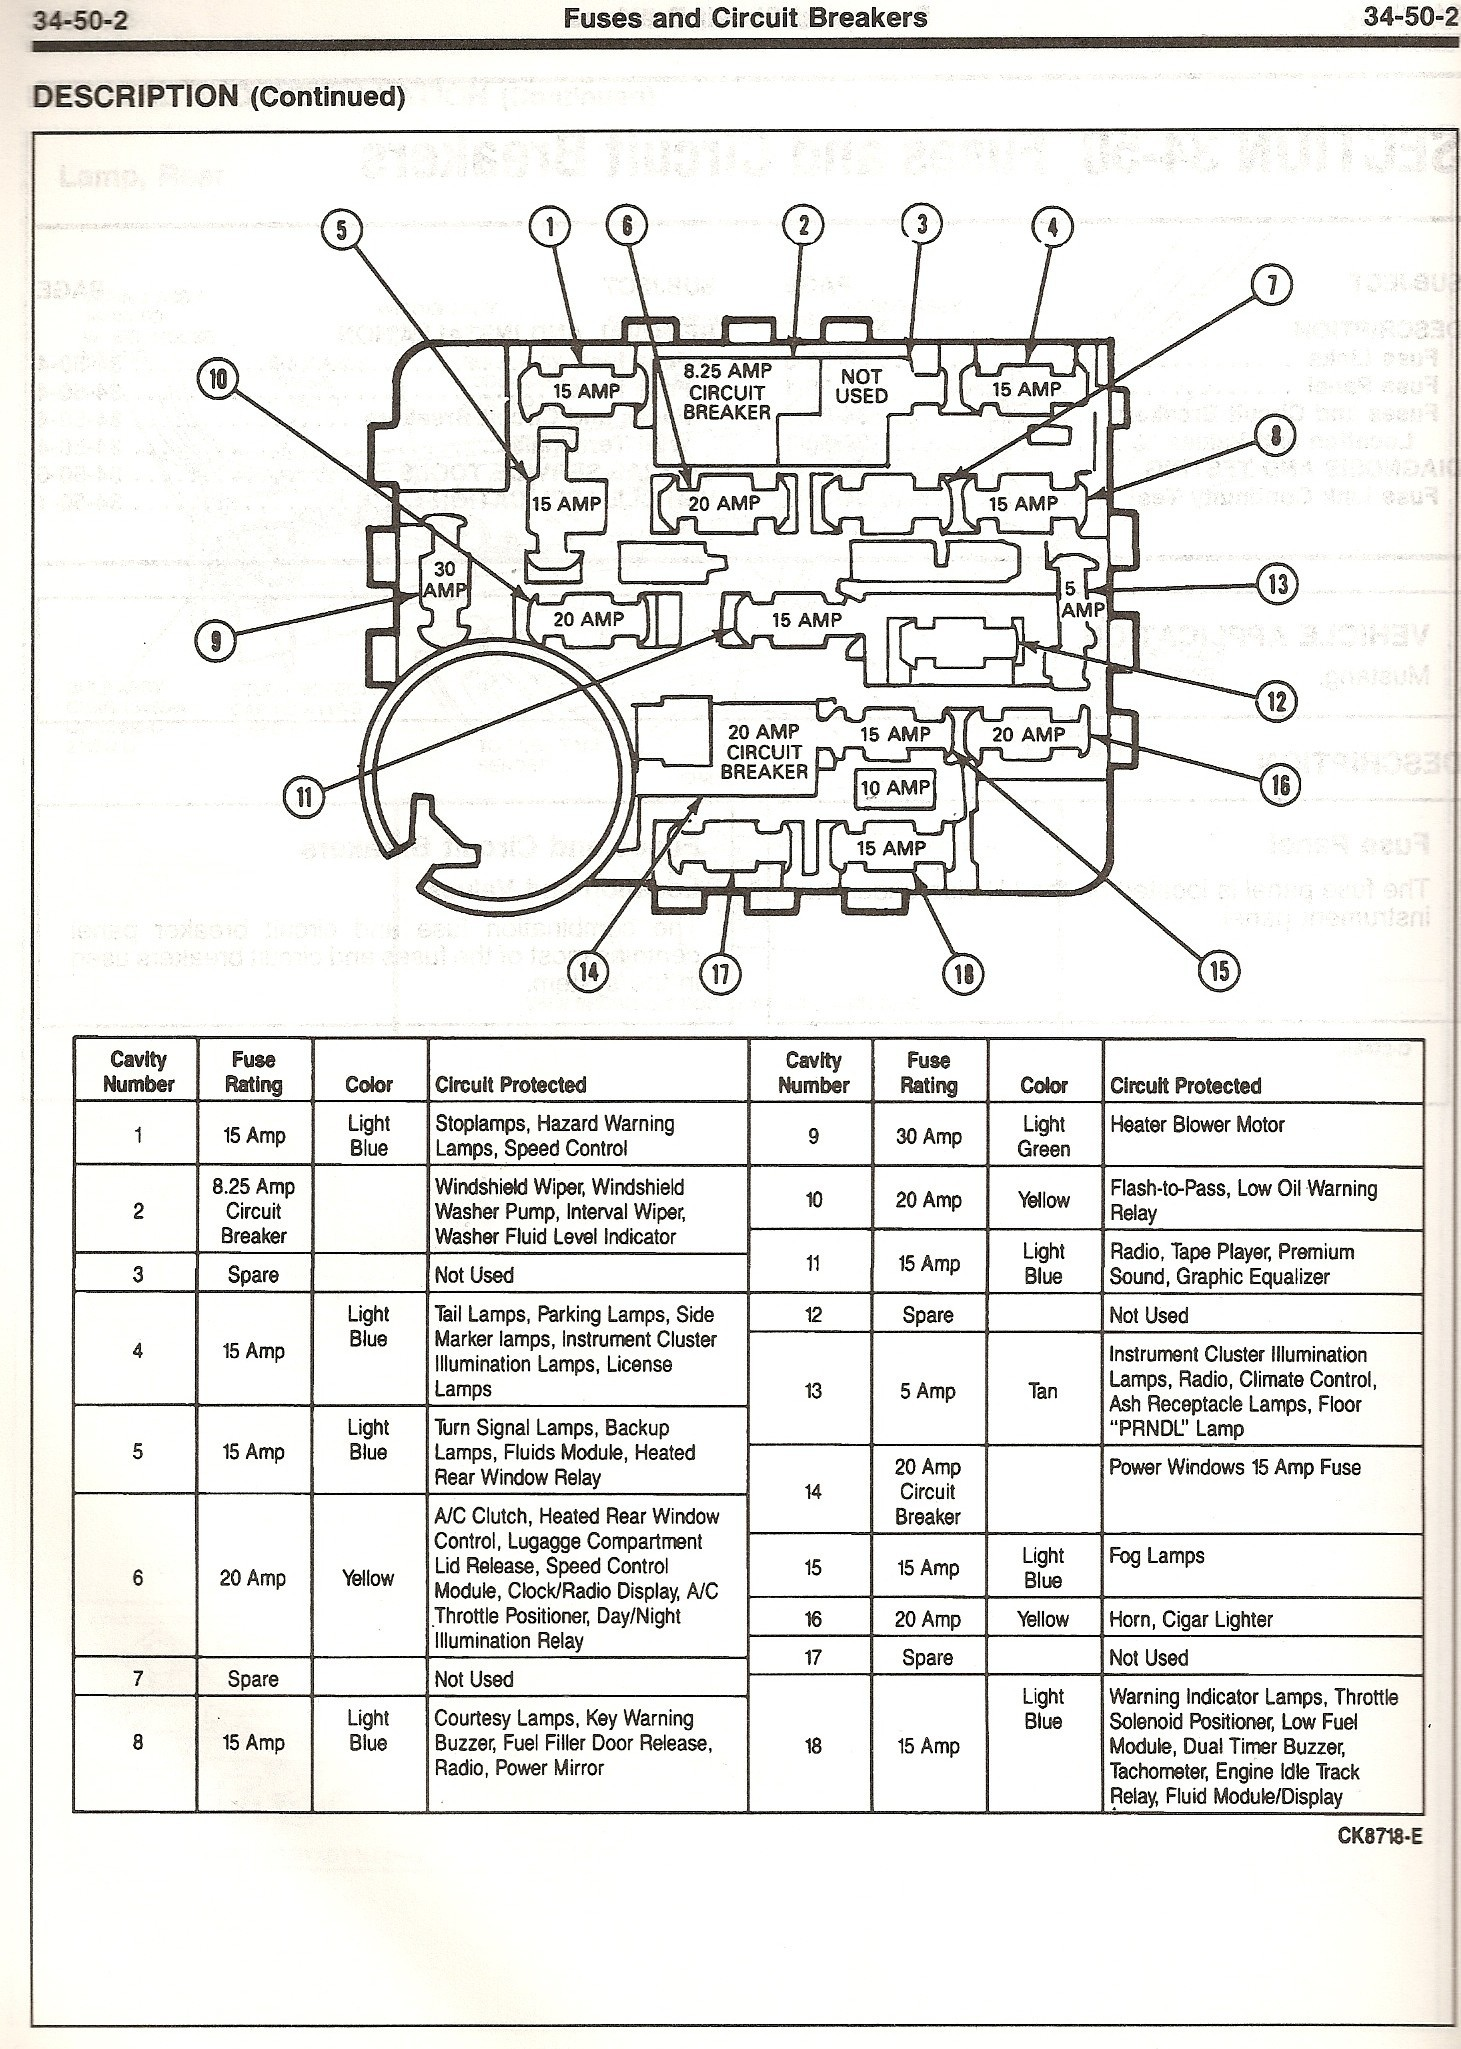 Wiring Manual Pdf  01 Ford Taurus Wiring Diagram